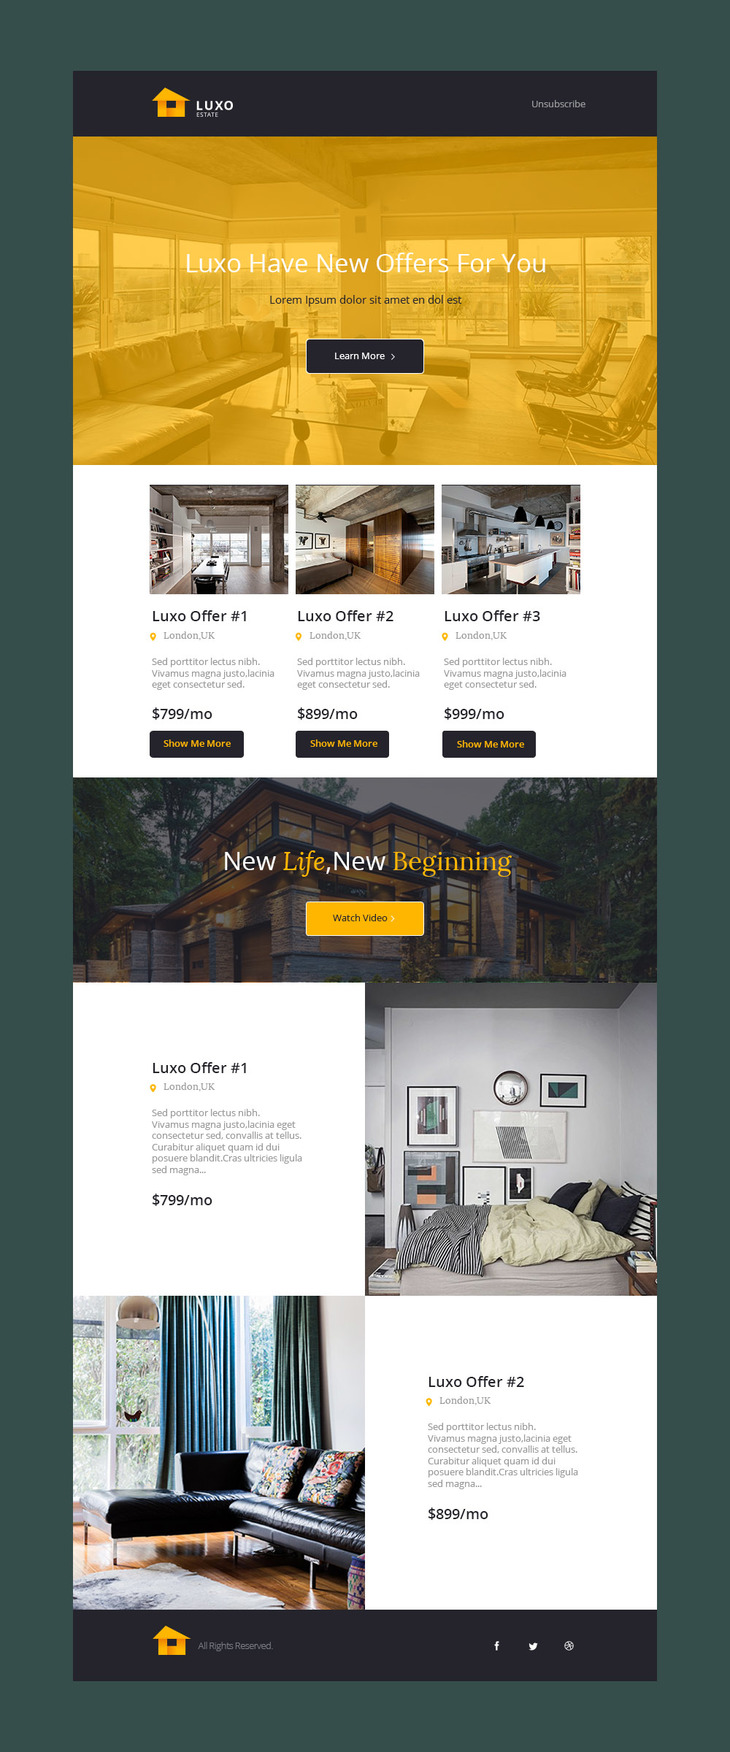 luxo free psd email template